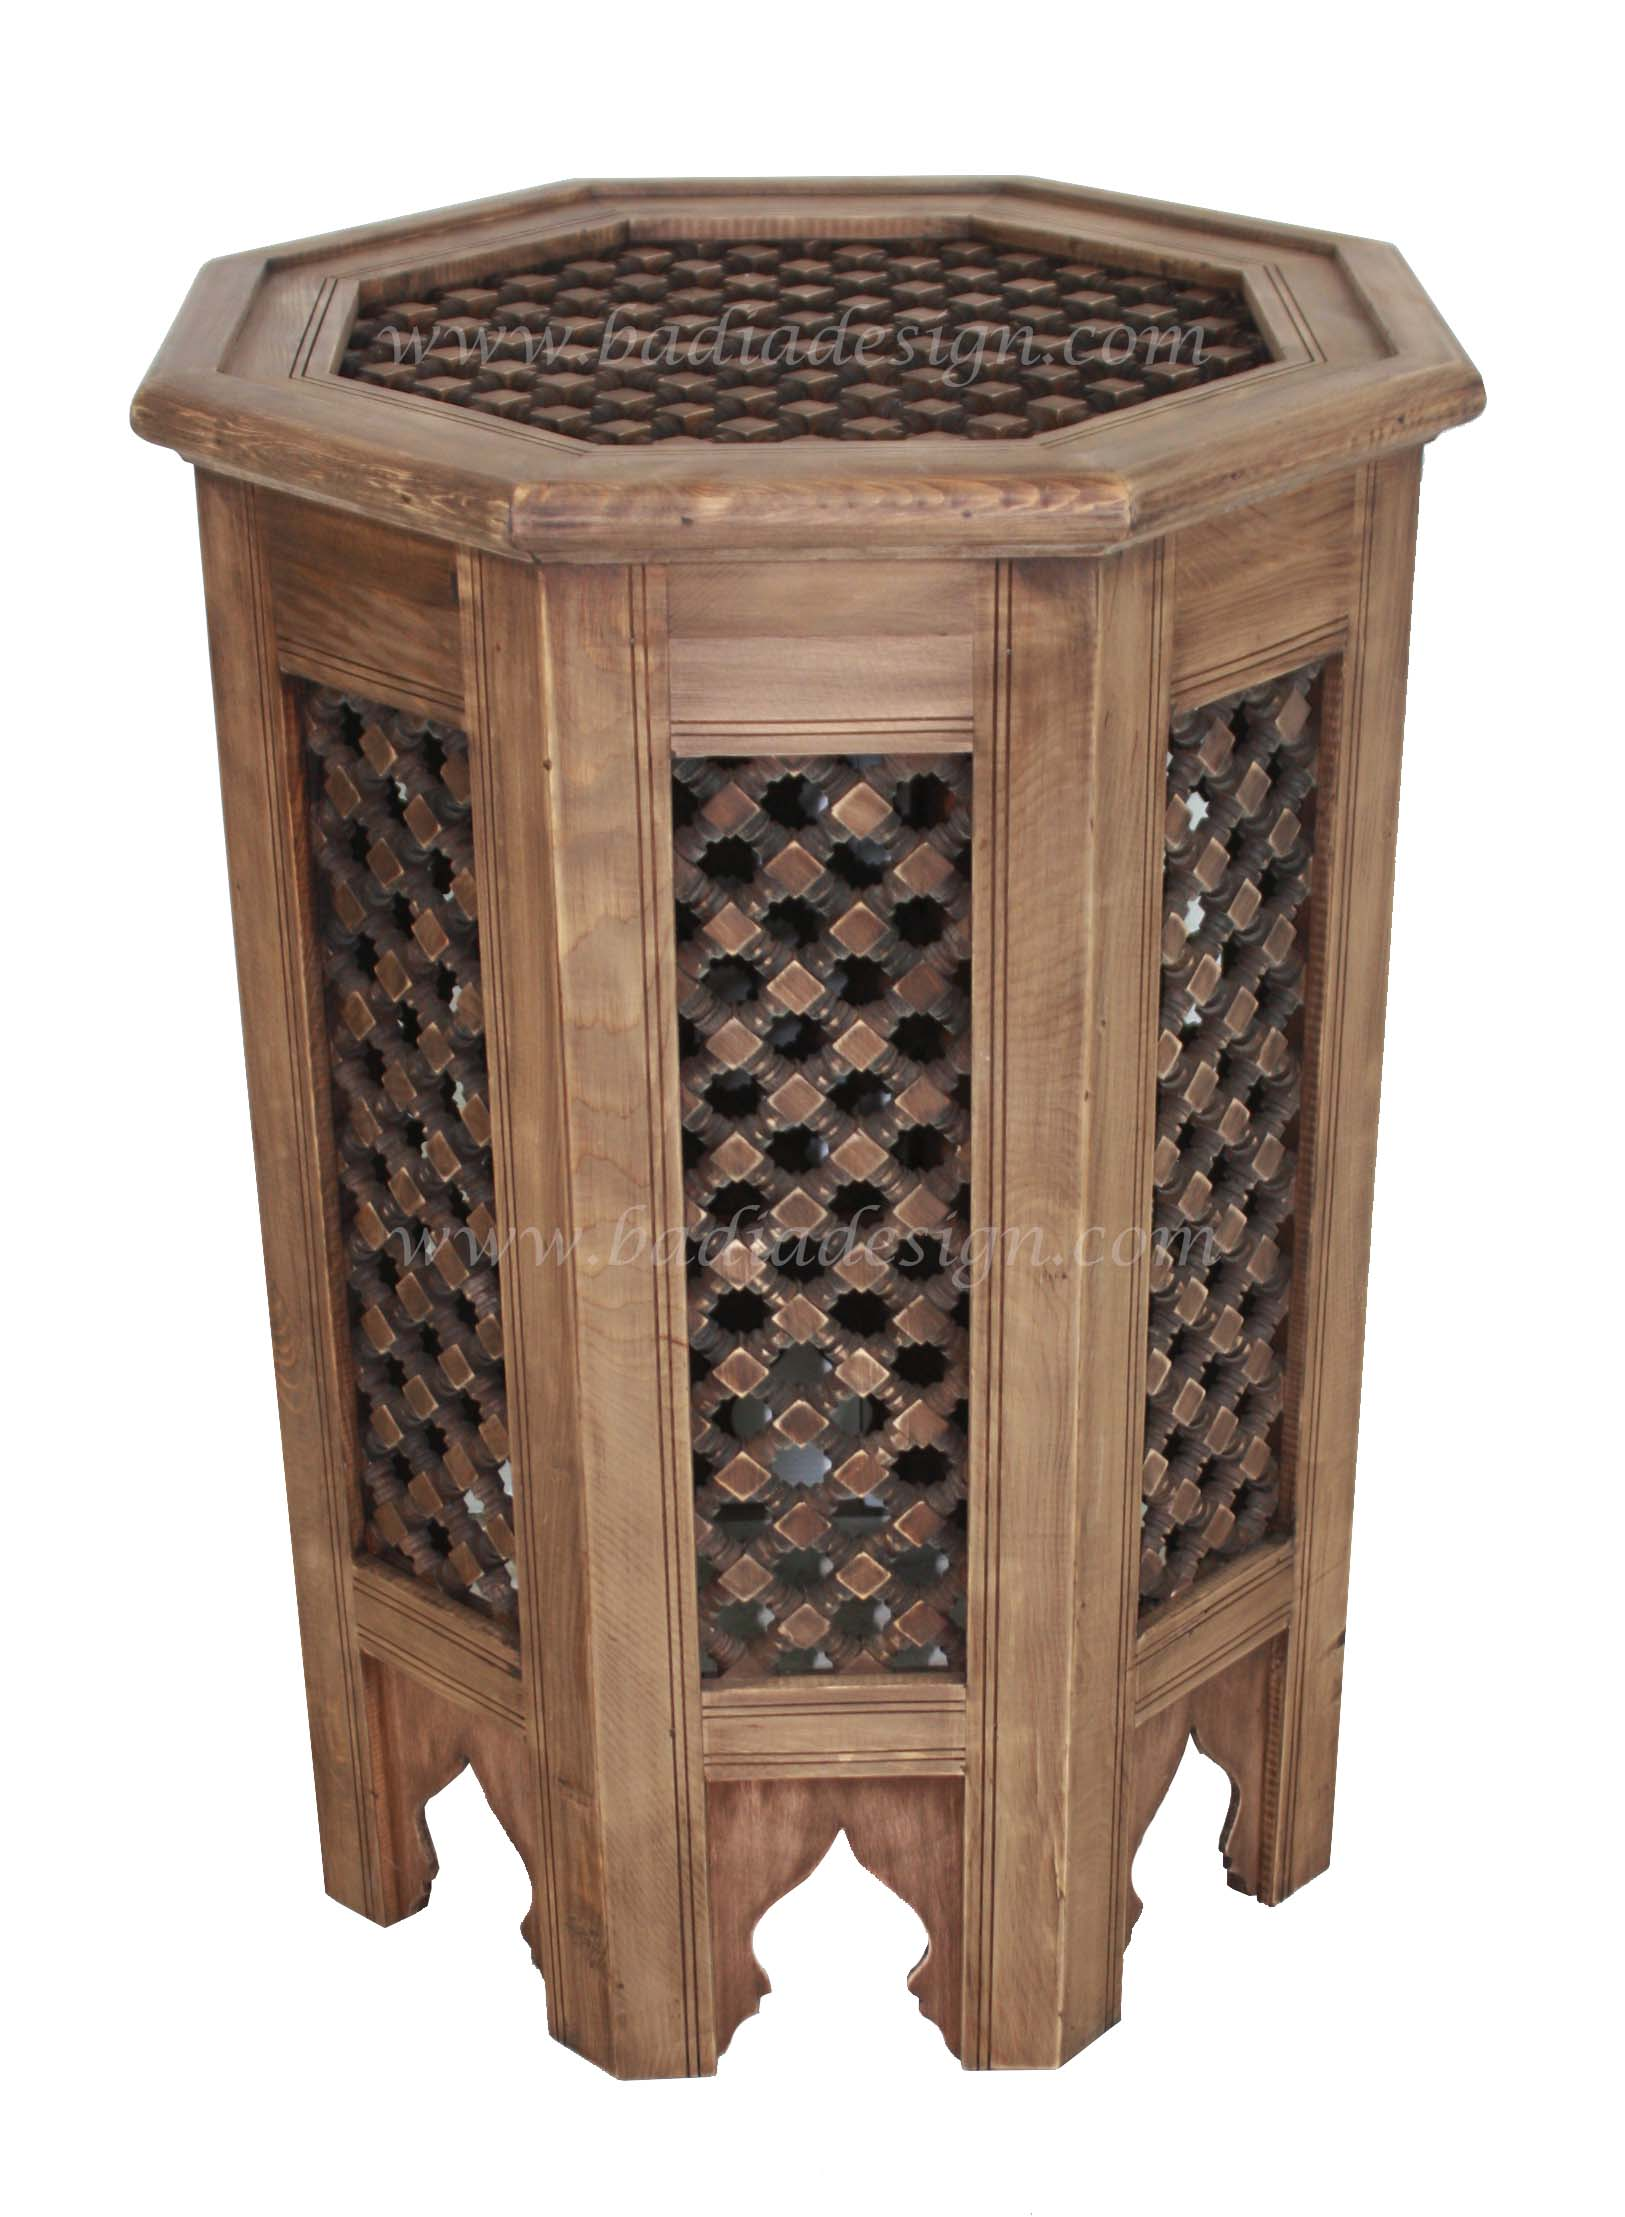 moroccan-wooden-side-table-cw-st004-1.jpg